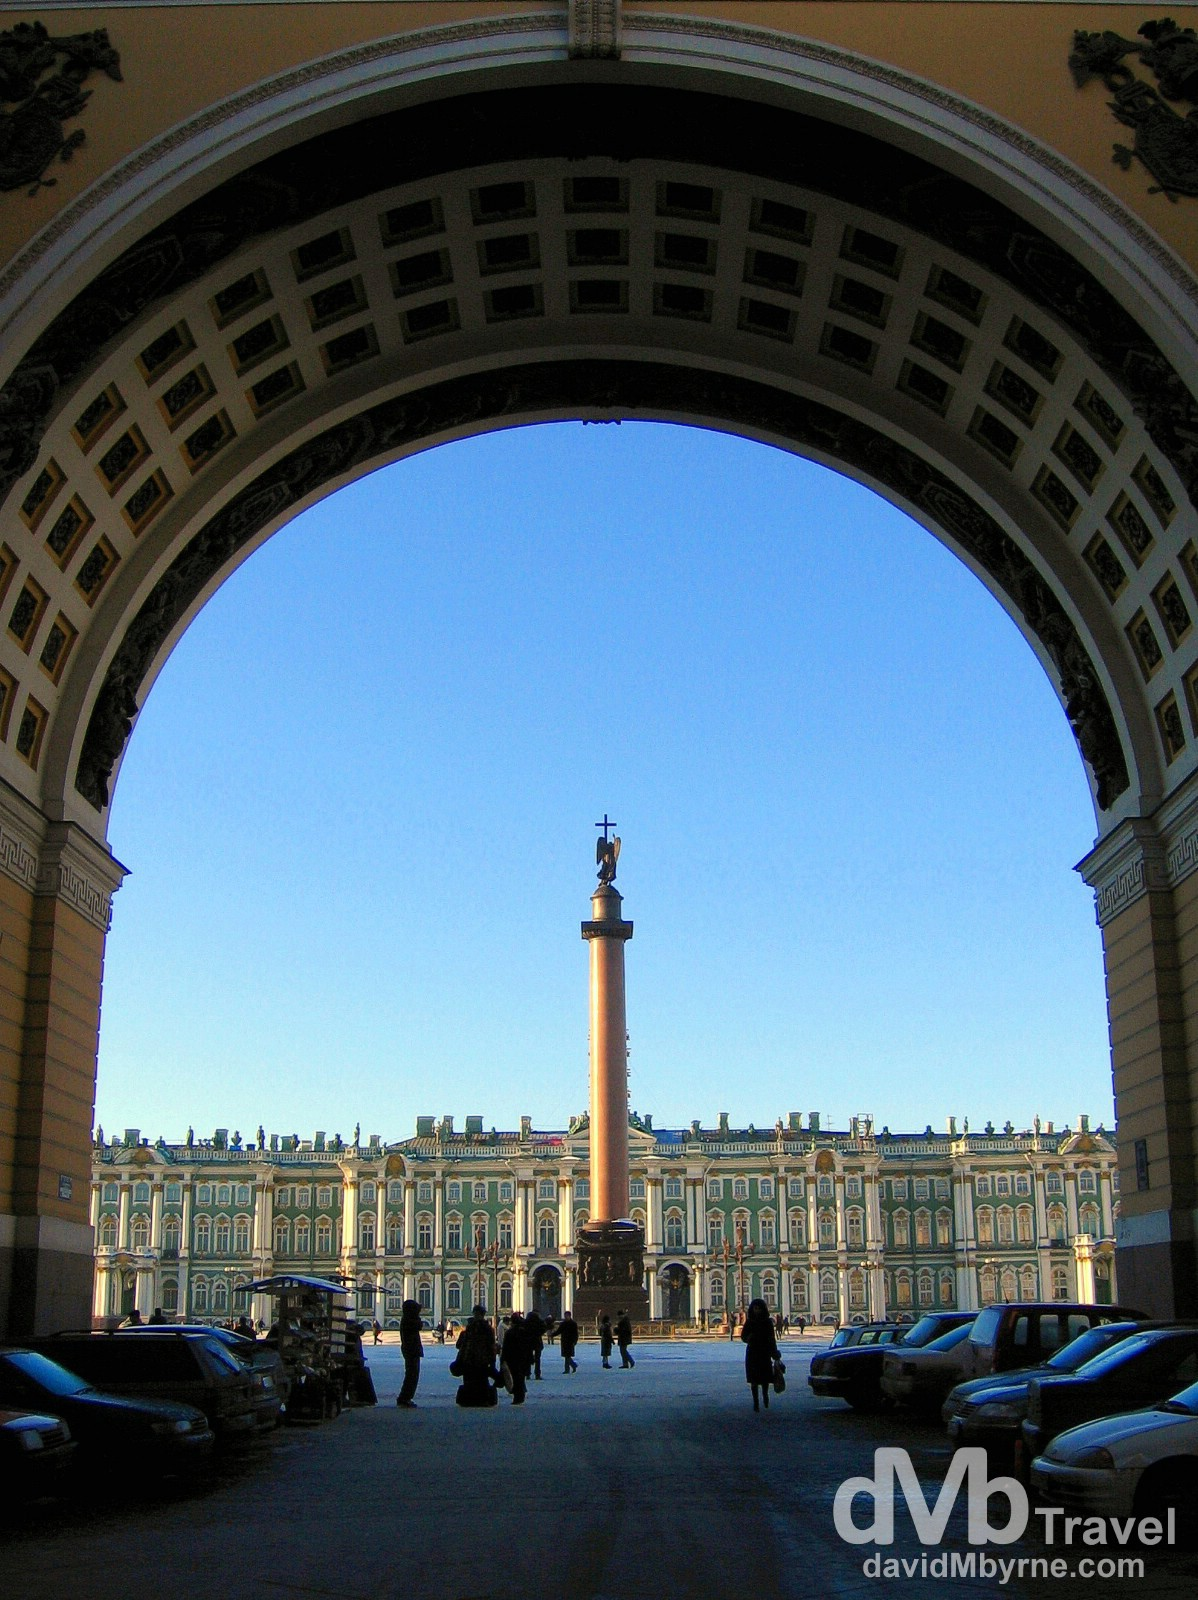 Palace Square as seen from under the arches of the General Staff Building on Bol Morskaya ul in St Petersburg, Russia. February 27, 2006.